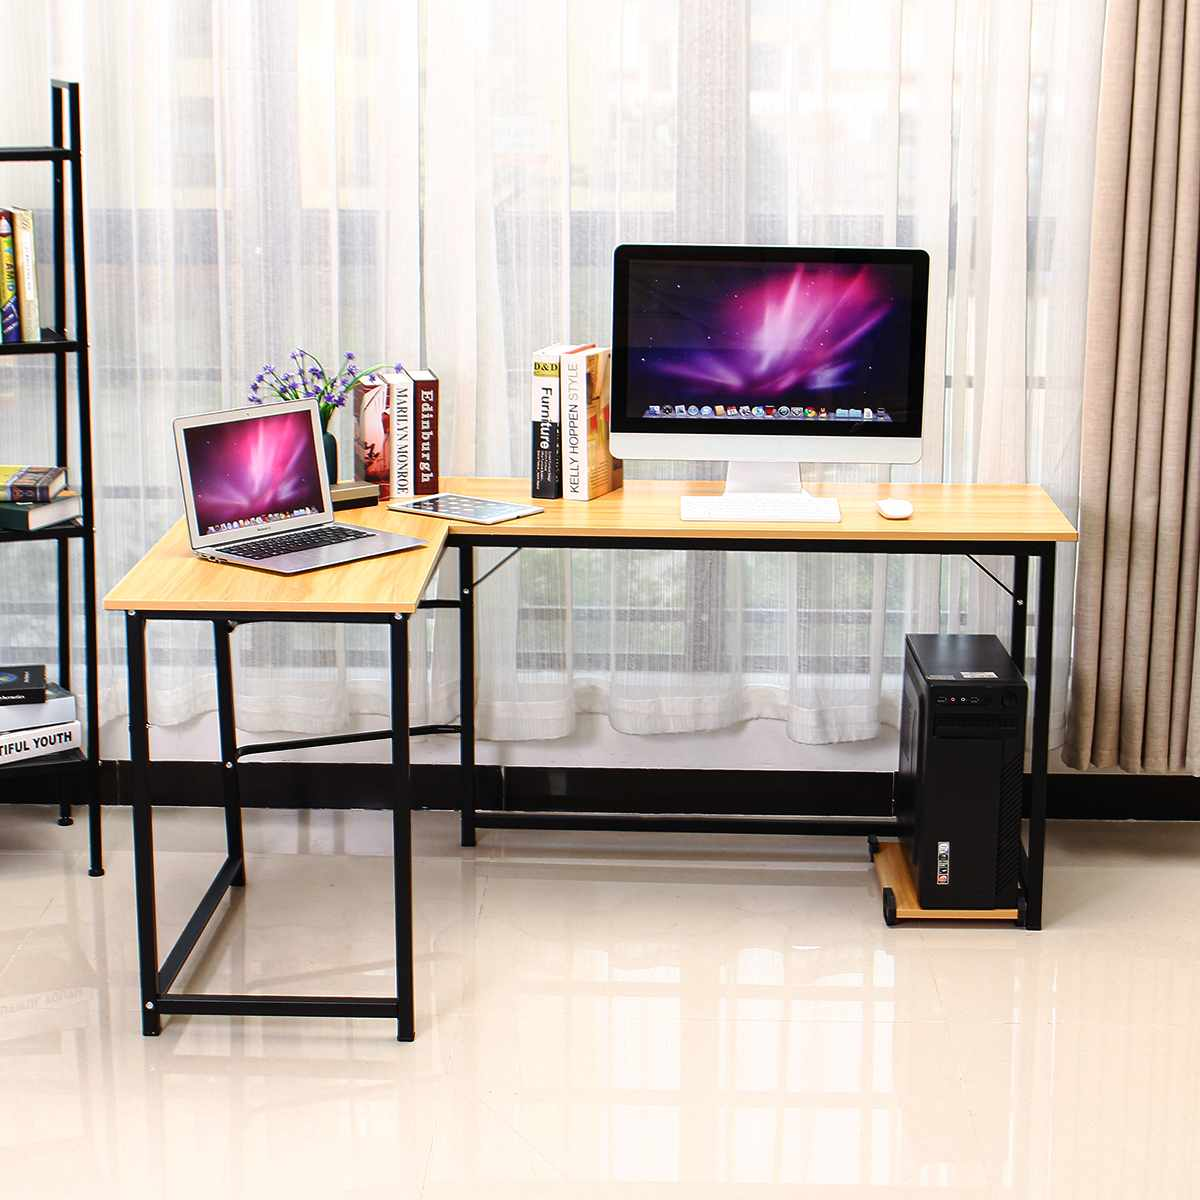 Wooden Office Computer Writing Desk Home Gaming PC Furnitur L-Shape Corner Study Computer Table Laptop Desk Laptop Table